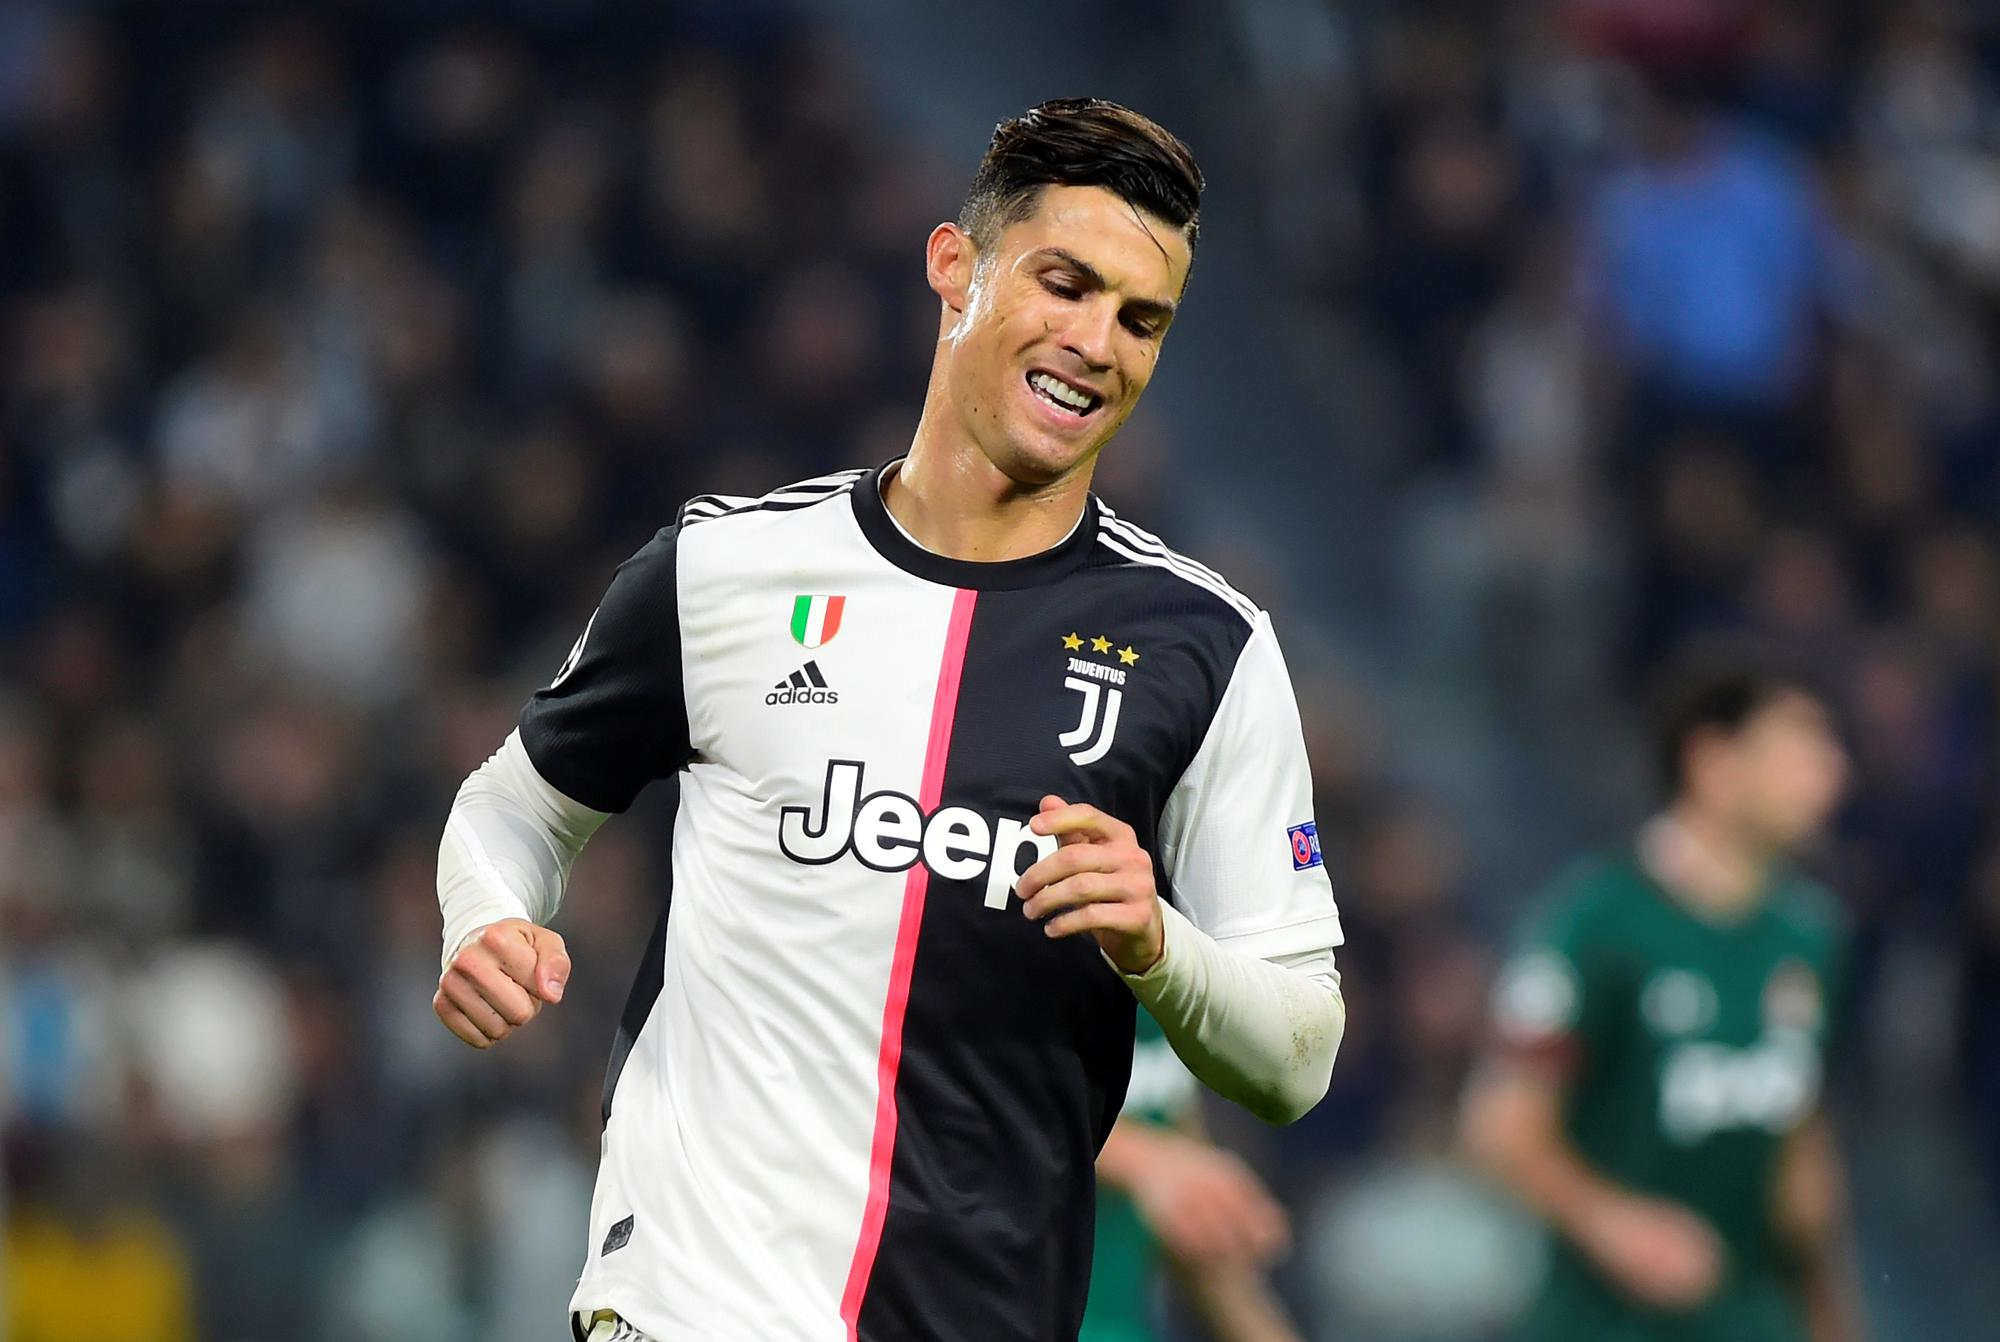 FCA pays up to keep its Jeep brand on CR7 Juve jersey